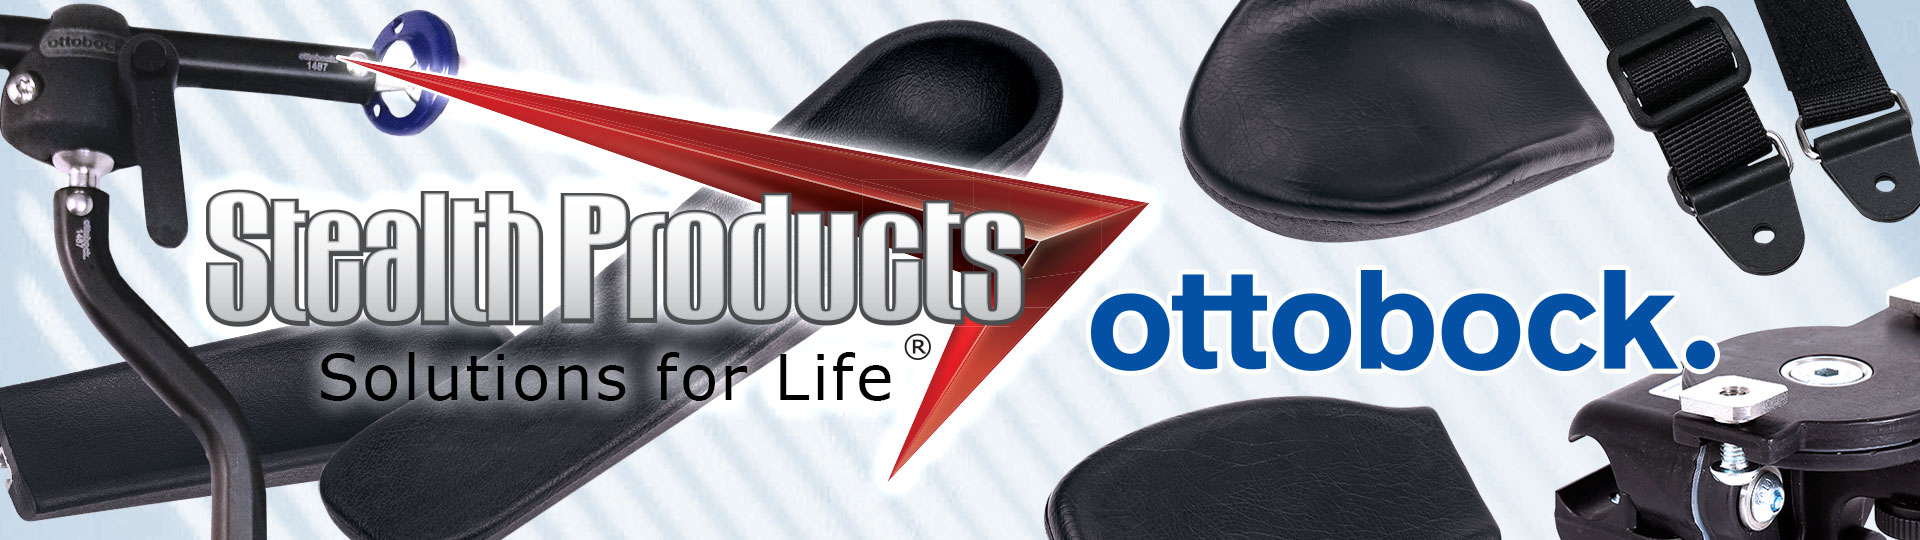 Stealth Exclusive Distribution of Select Positioning Accessories from Ottobock